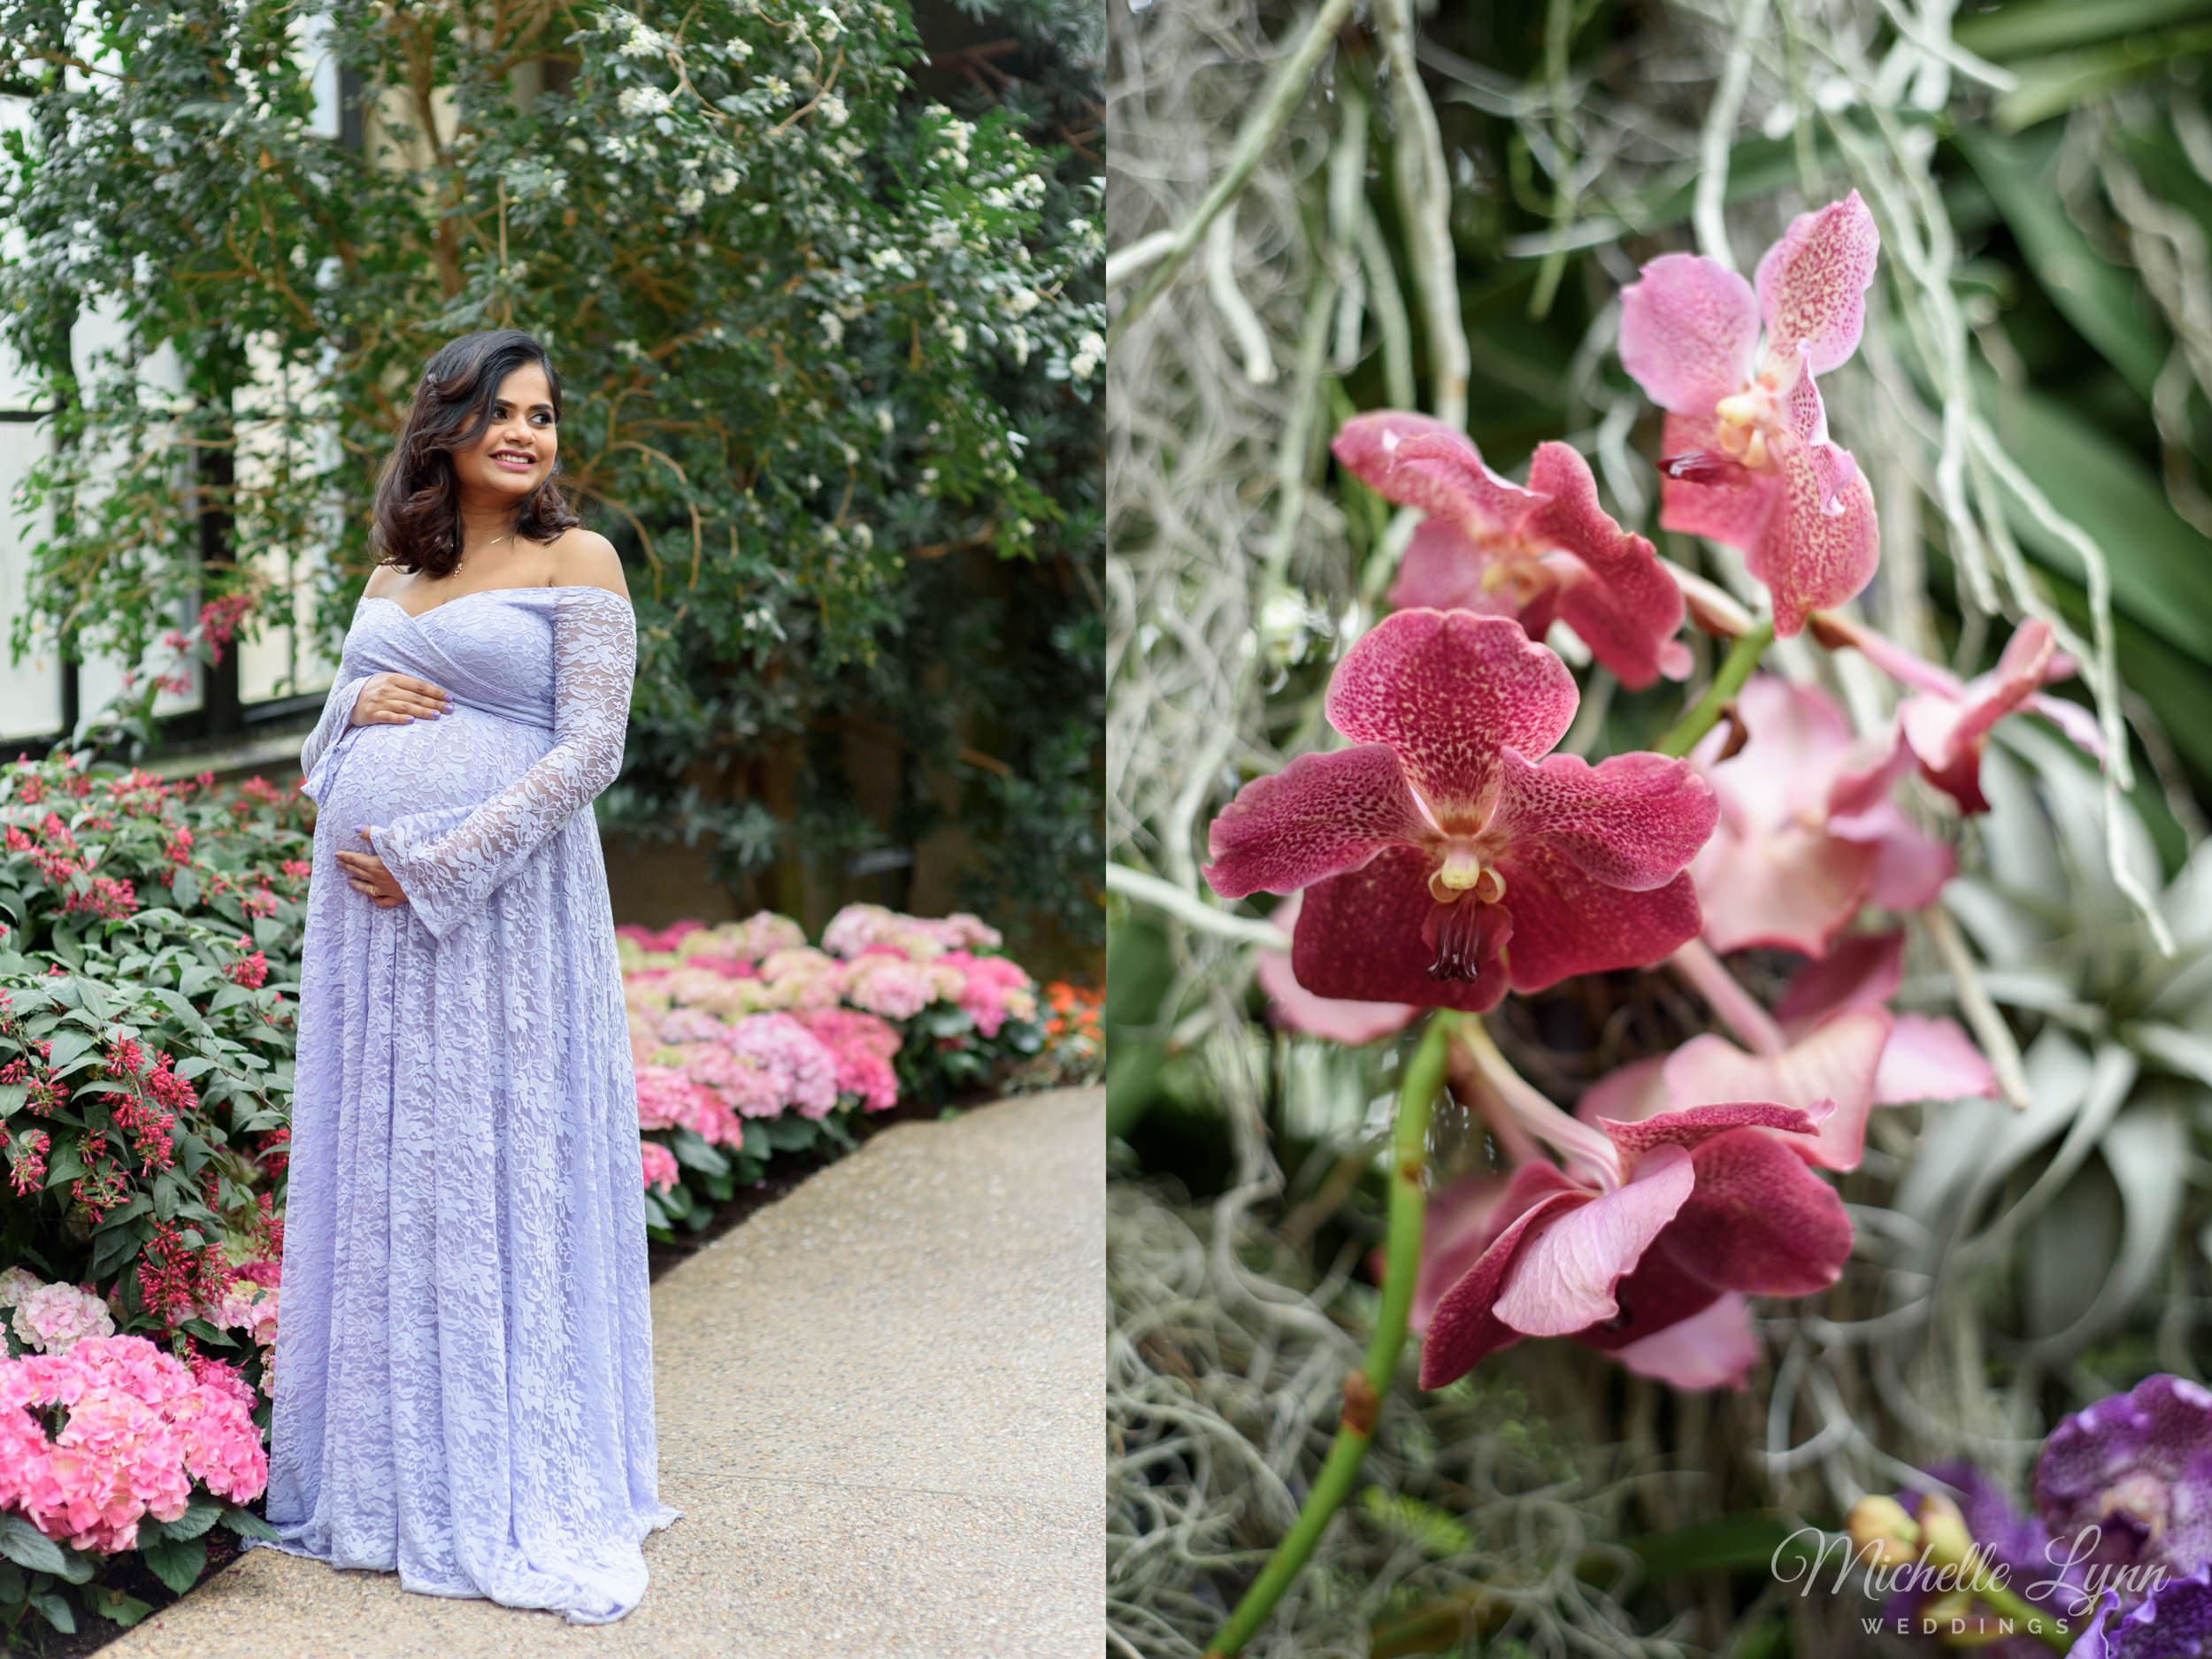 mlw-longwood-gardens-maternity-photos-9.jpg